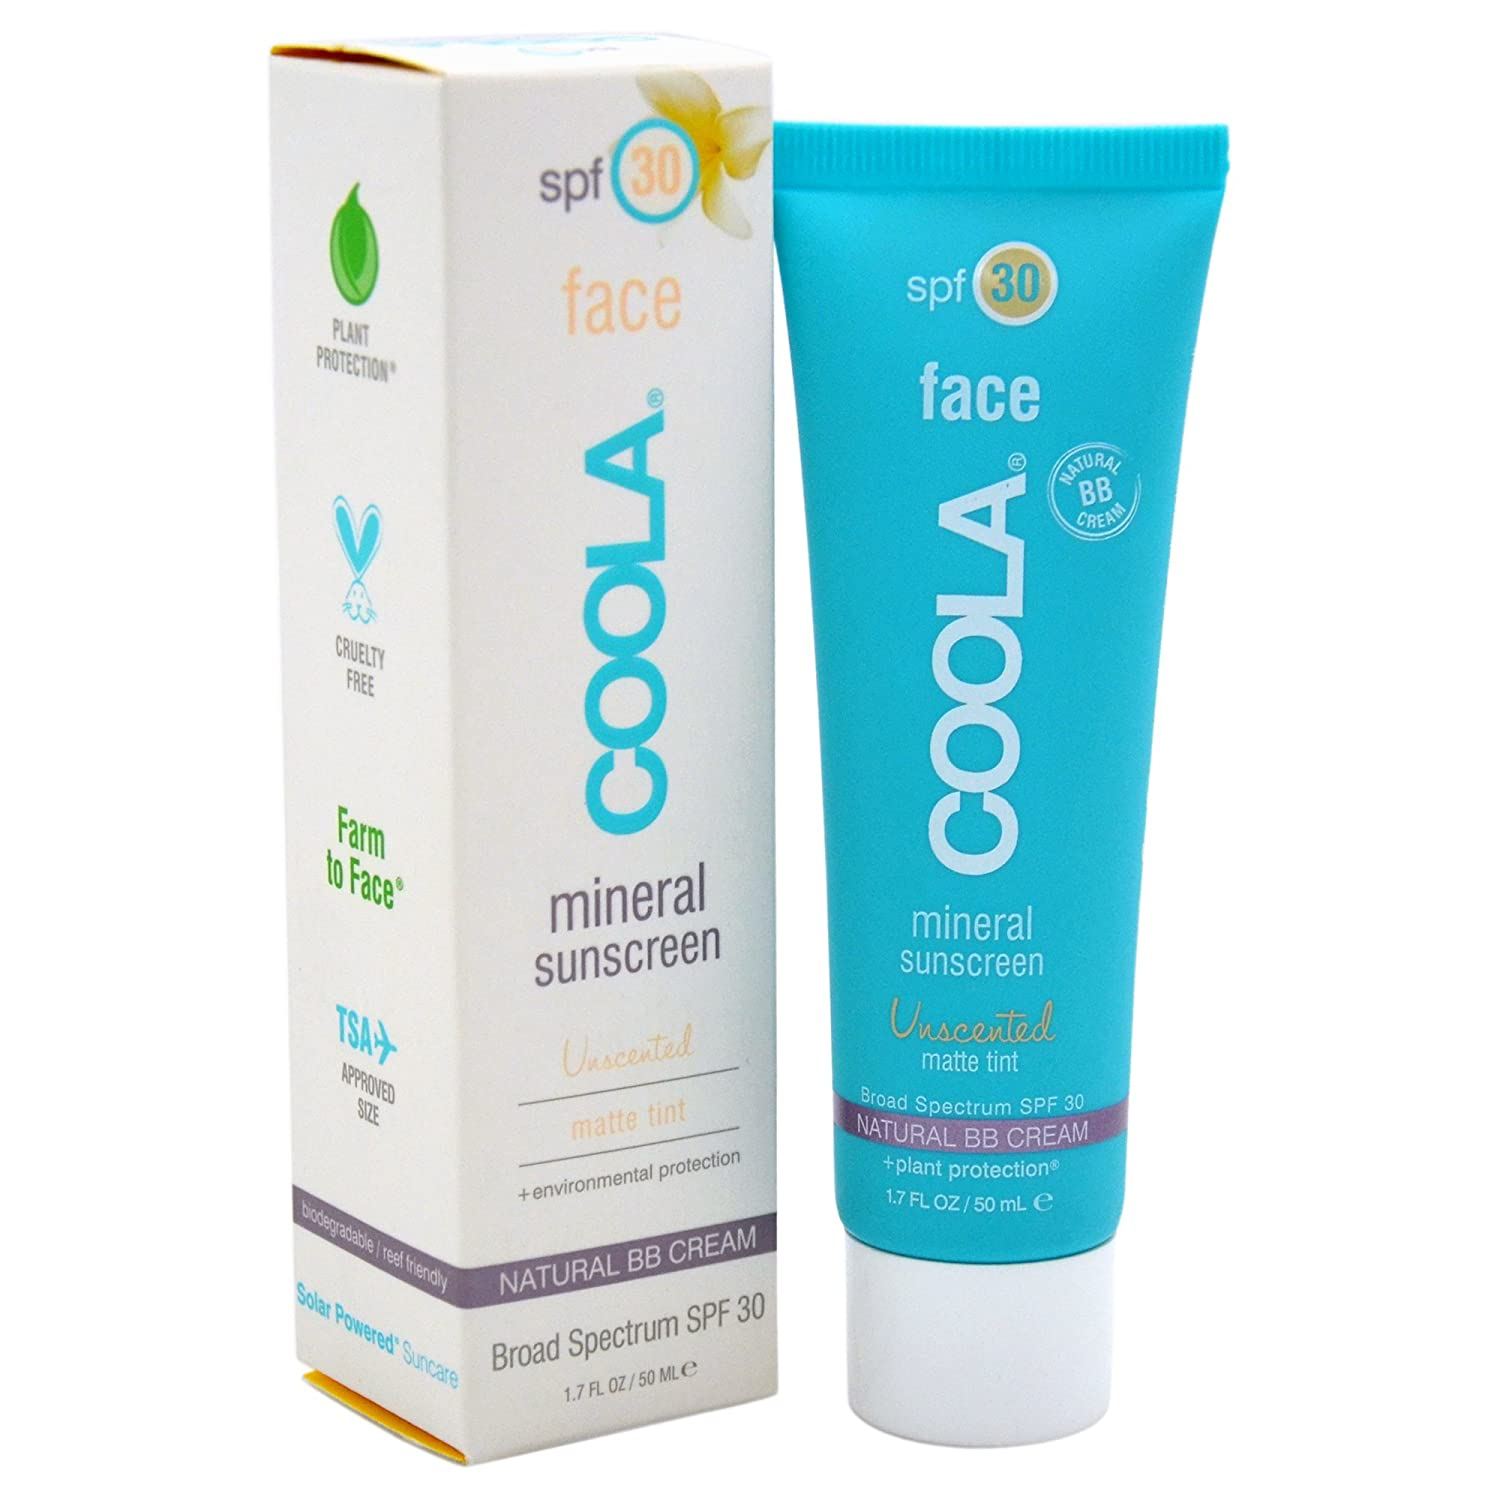 Mineral Face Matte Tint Moisturizer SPF 30 by coola #20